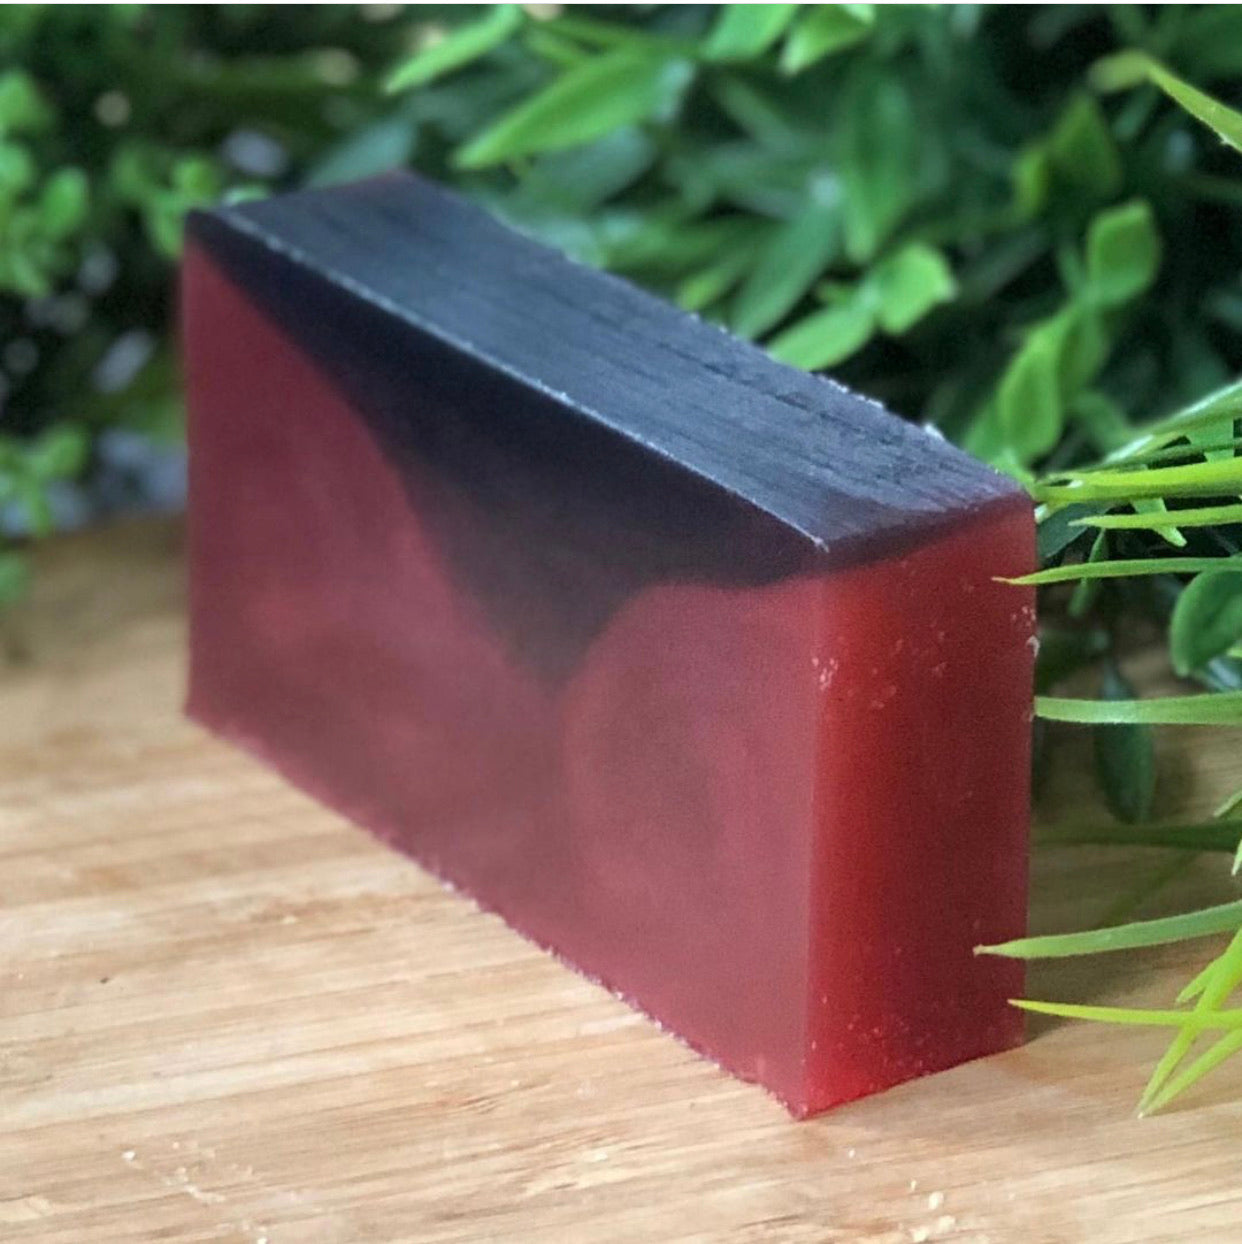 Pomegranate Noir, with Sparkling Mica - Théo's Planet Soap Bar